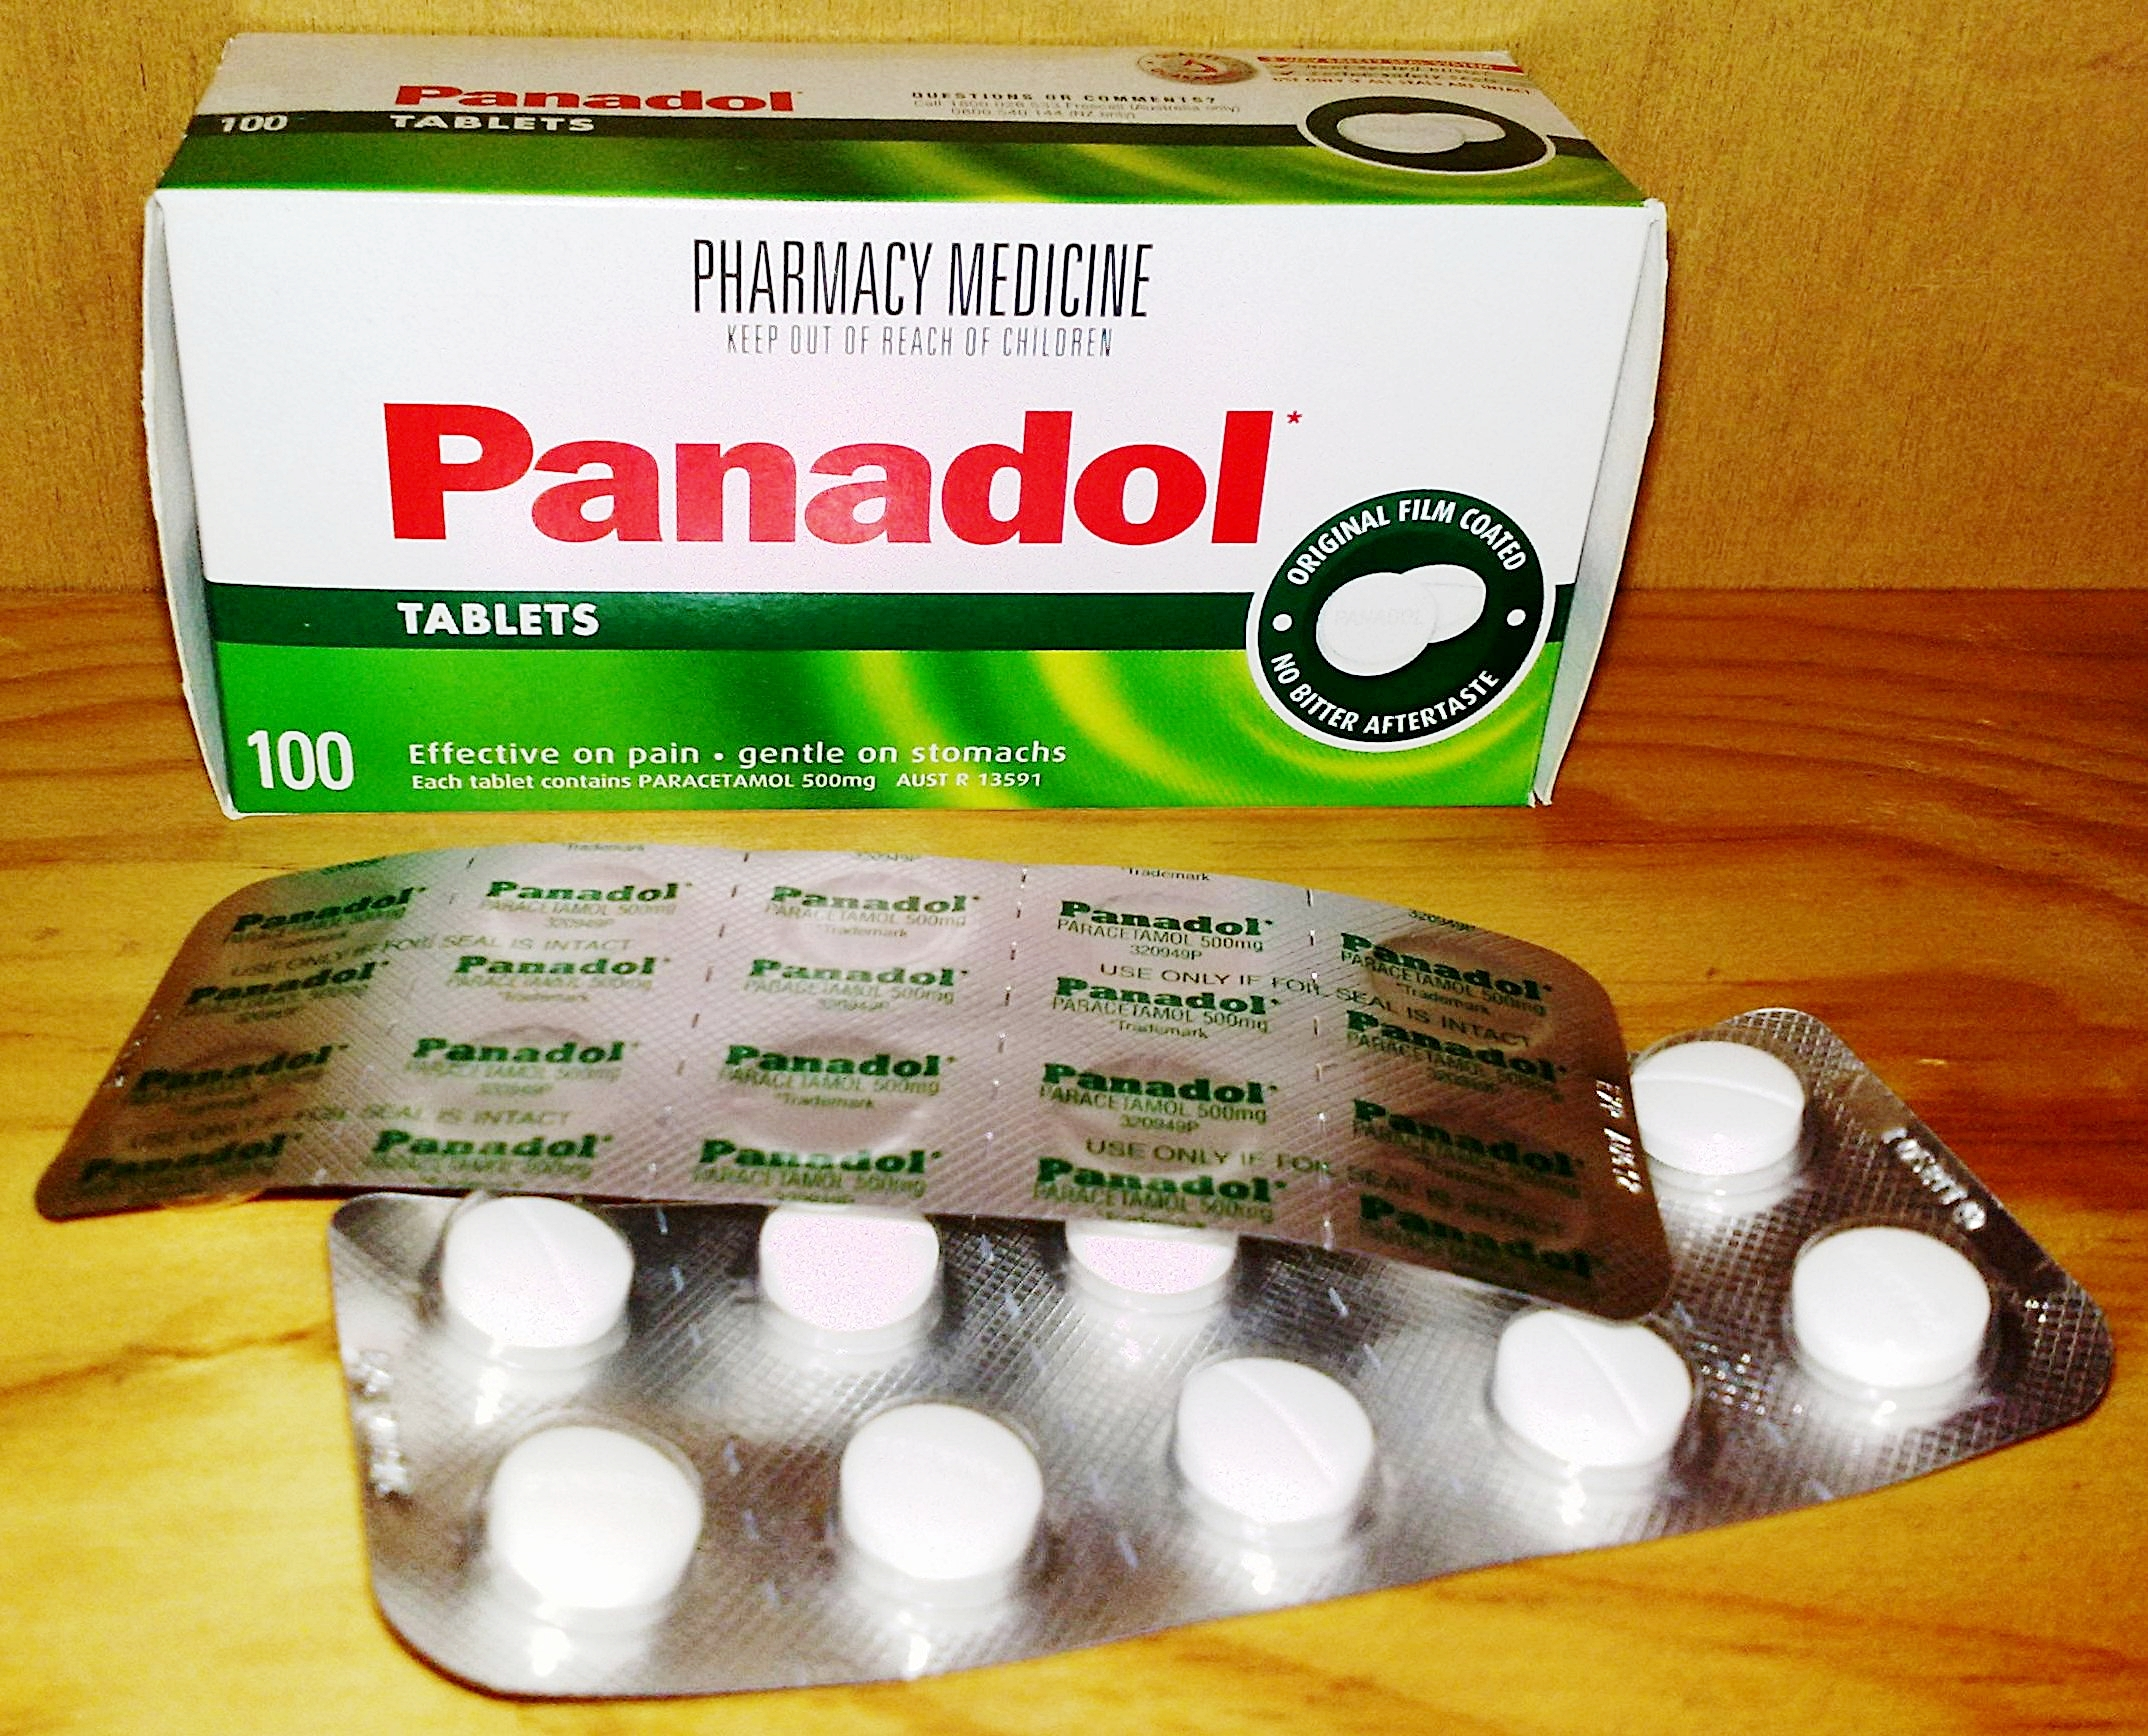 Pain, pain, go away. Panadol to the rescue? Maybe not.   Editor182/Wikimedia Commons  (public domain)